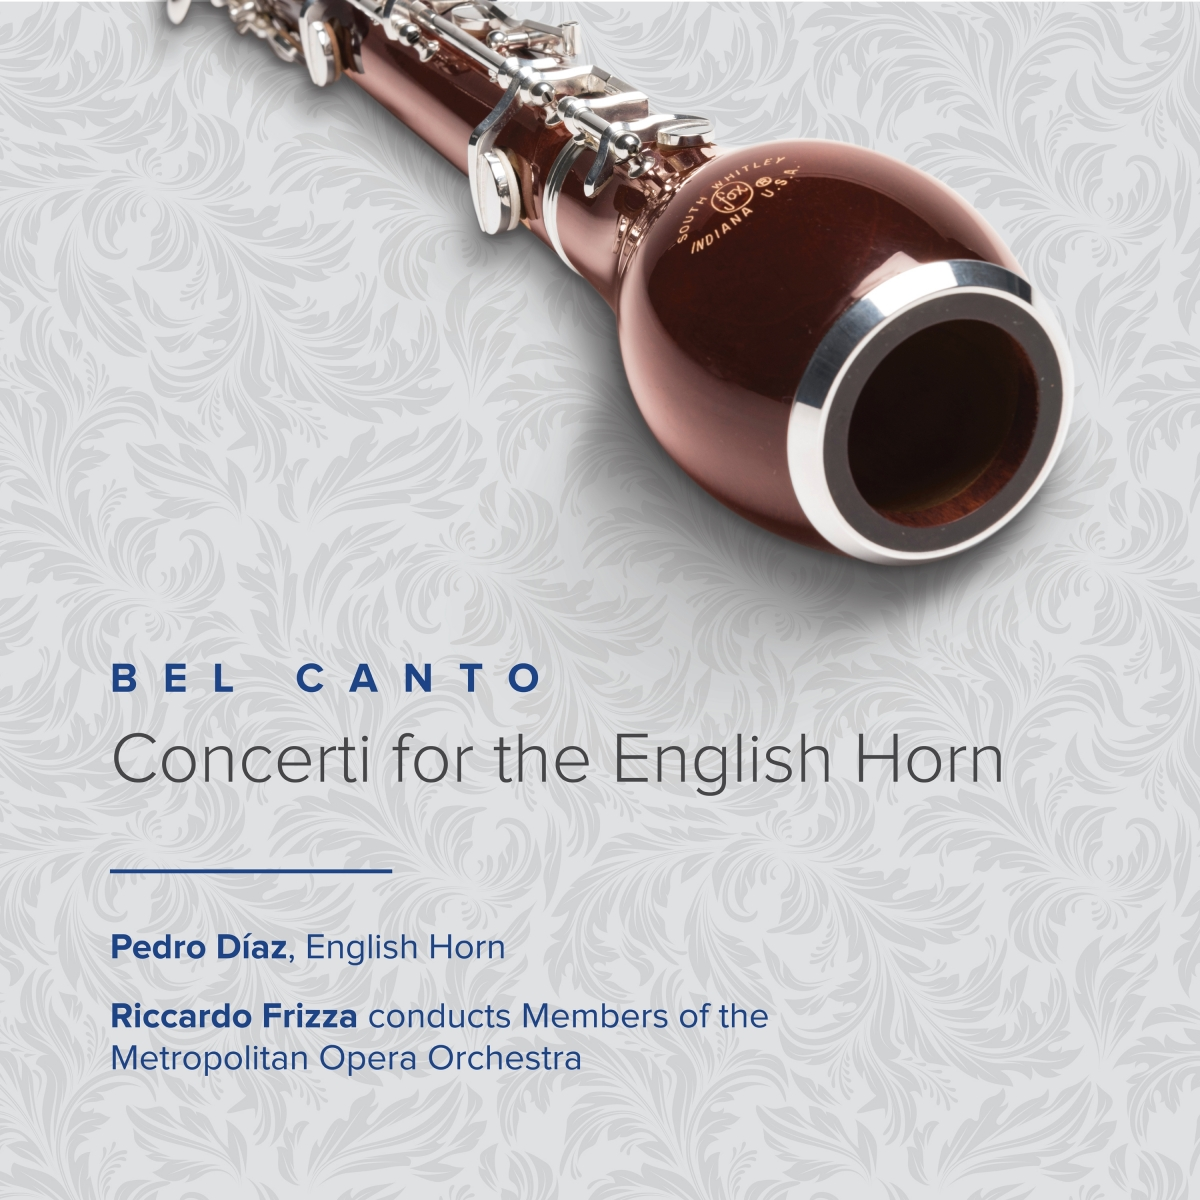 Bel Canto: Concerti for the English Horn by Pedro Diaz